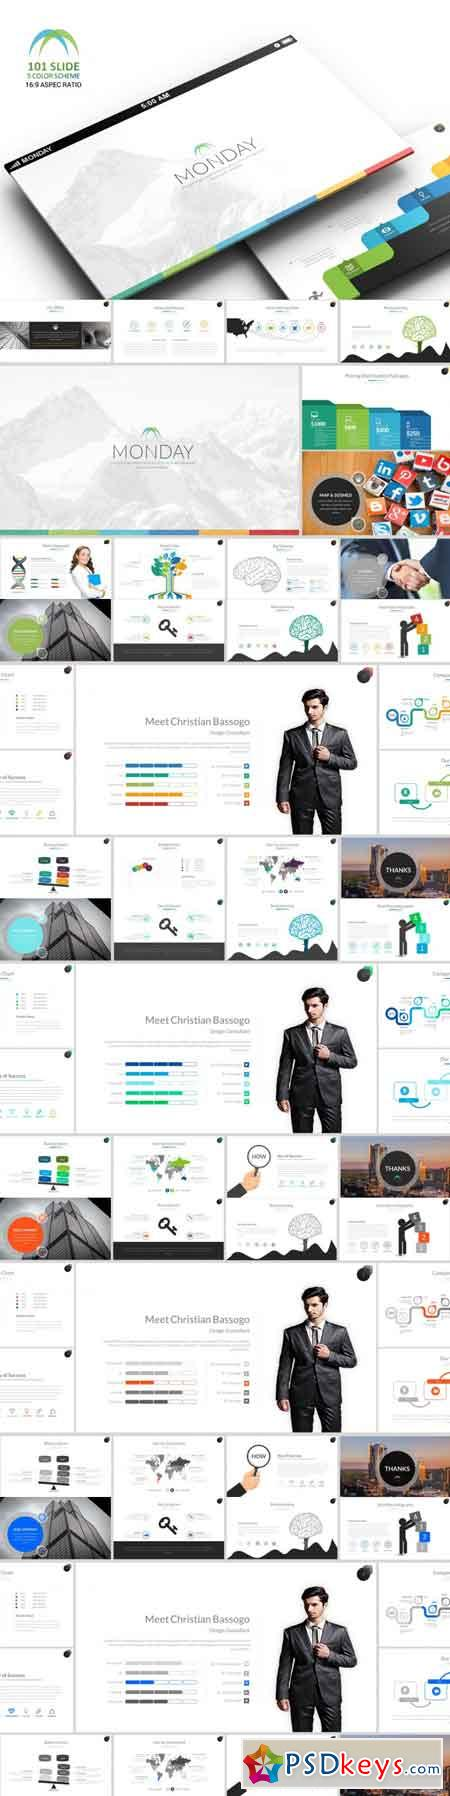 Monday Powerpoint Template 3485286